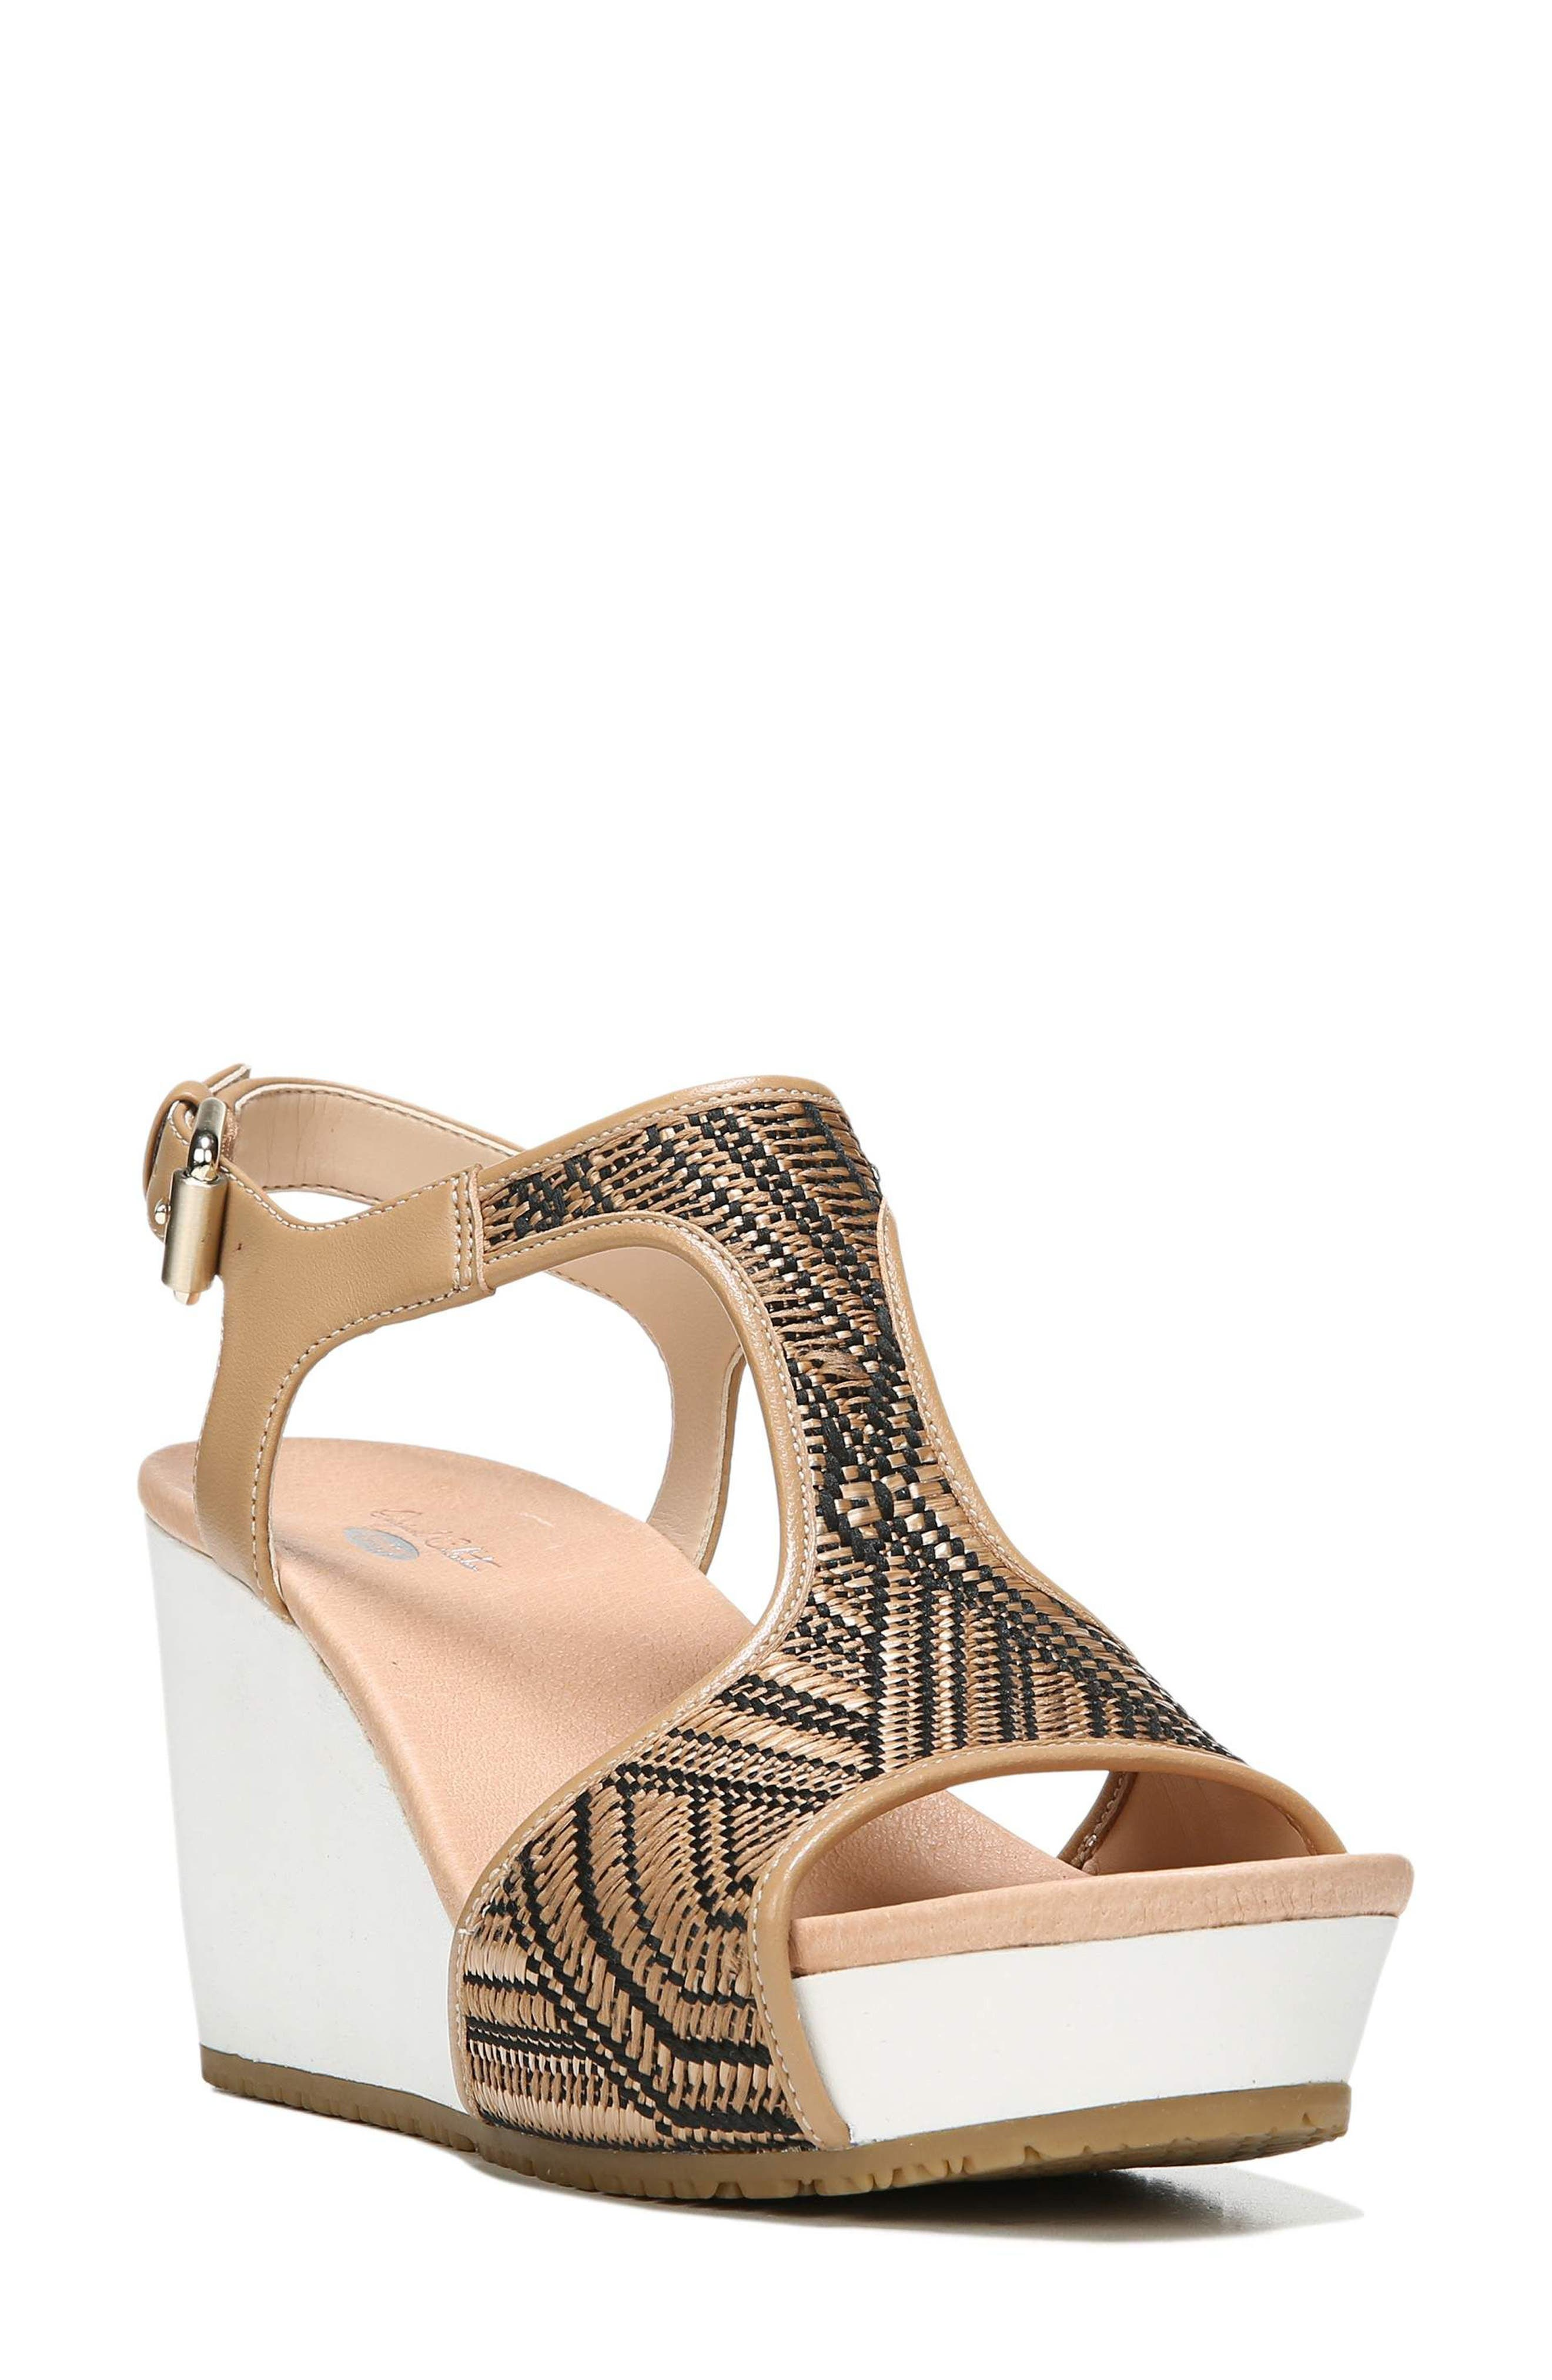 Main Image - Dr. Scholl's 'Original Collection Wiley' Wedge Sandal (Women)